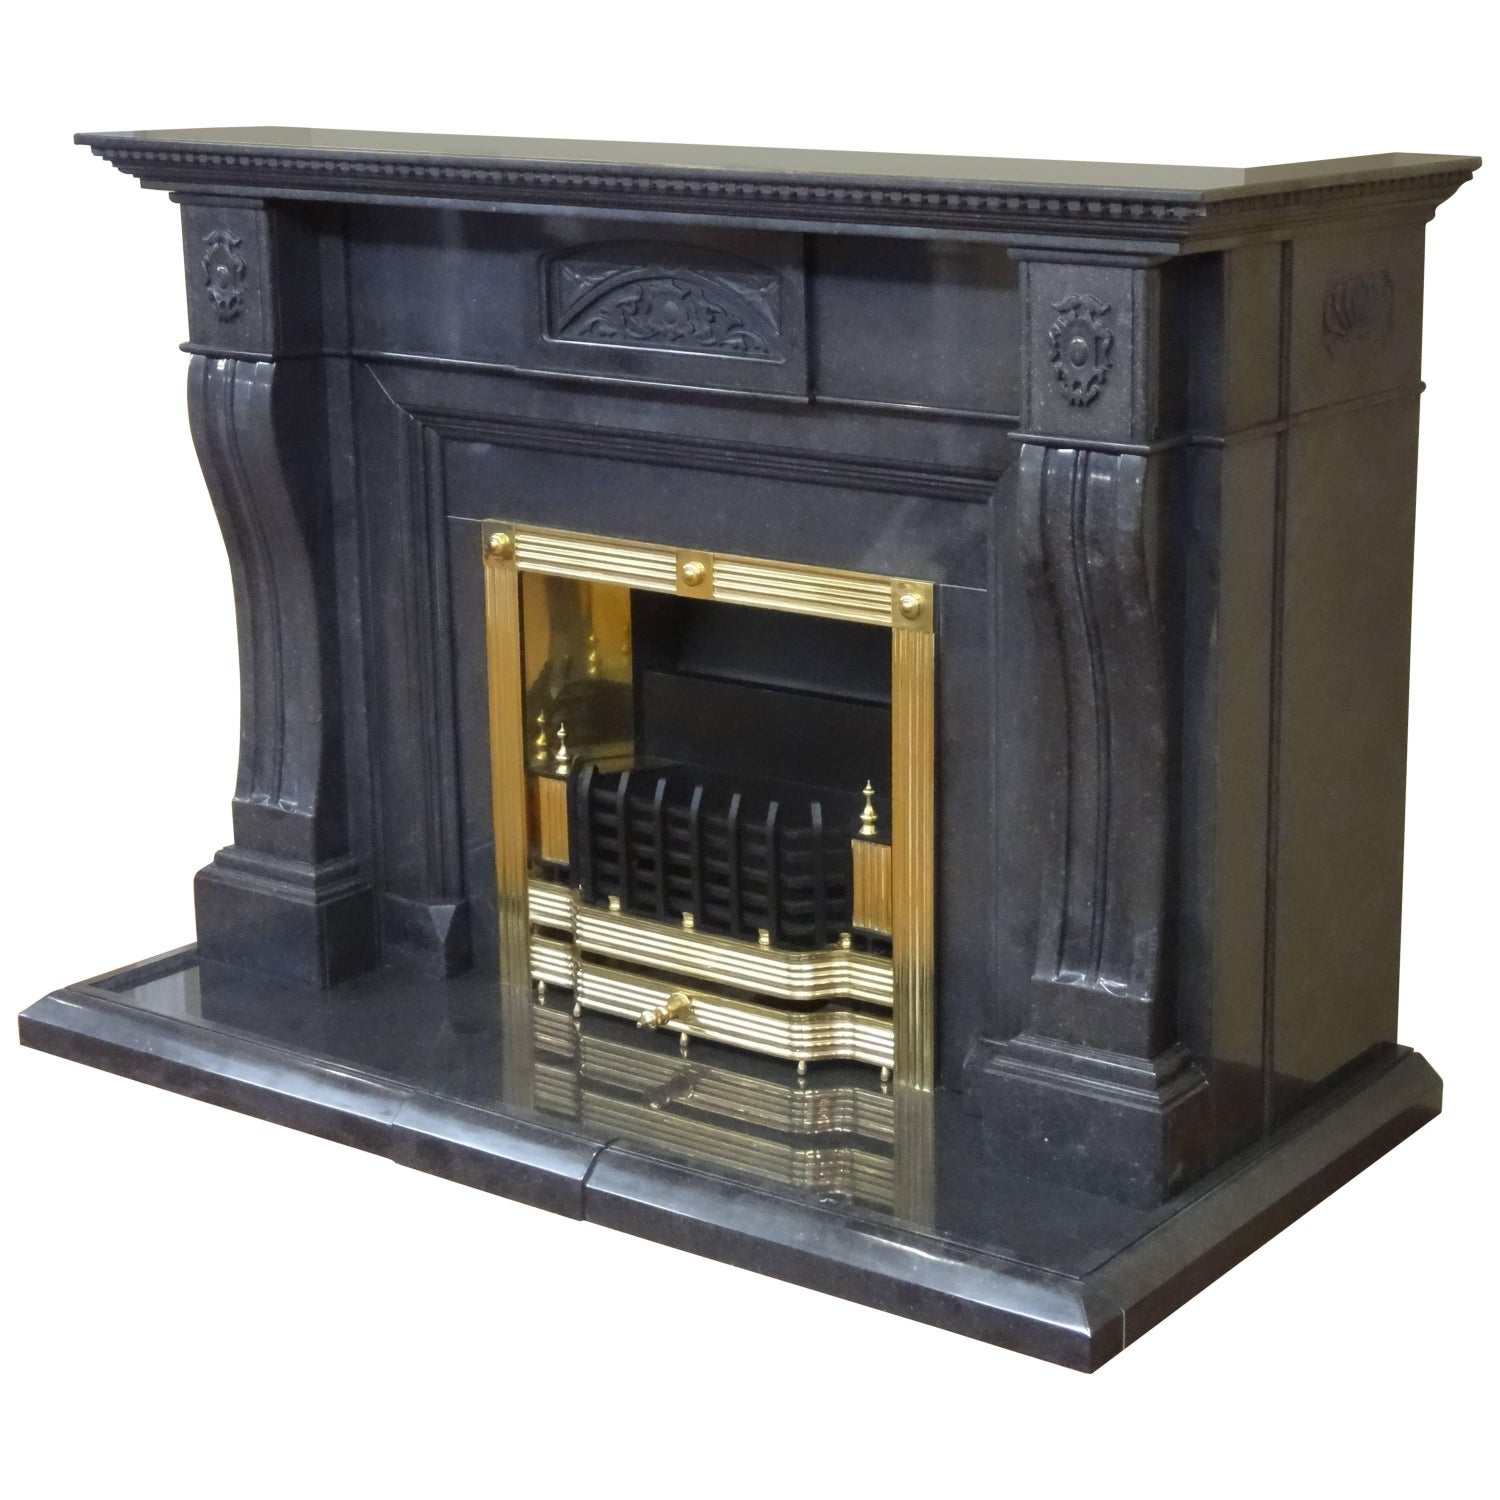 carved marble wrap around chimney breast fireplace with brass